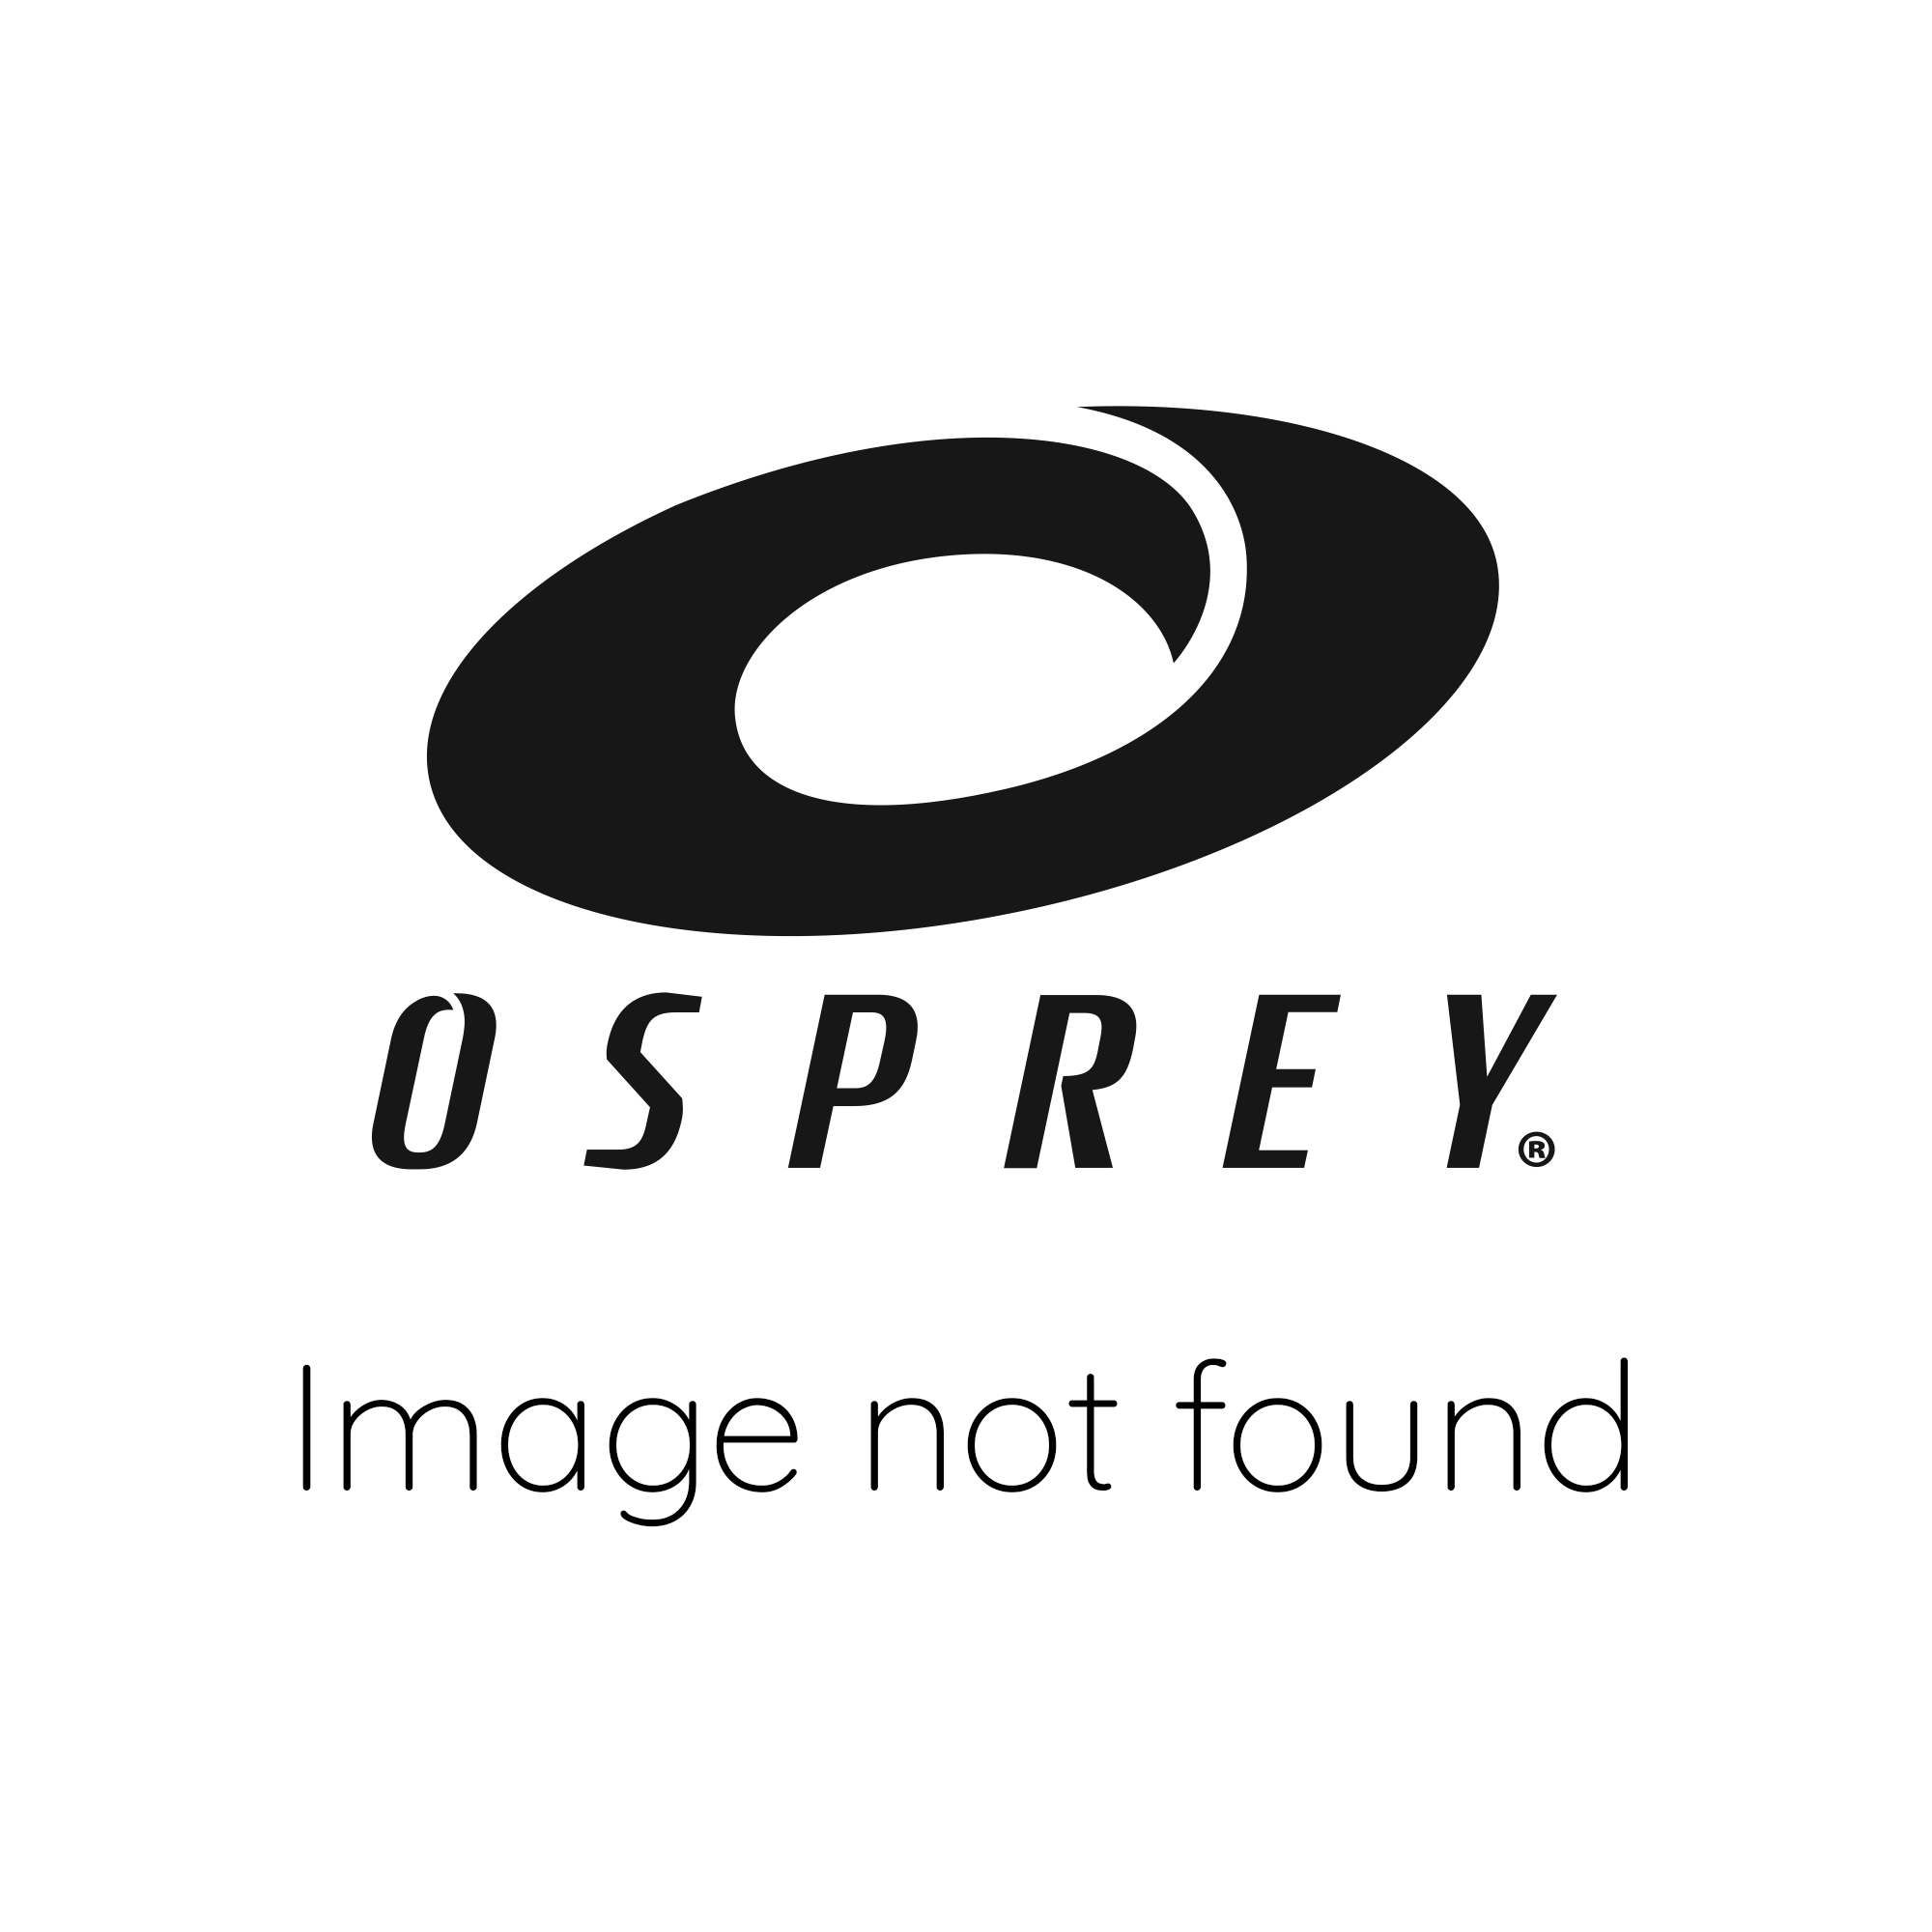 Osprey Foam Surfboard Fins - 7ft - 8ft (3 Pack) - Green